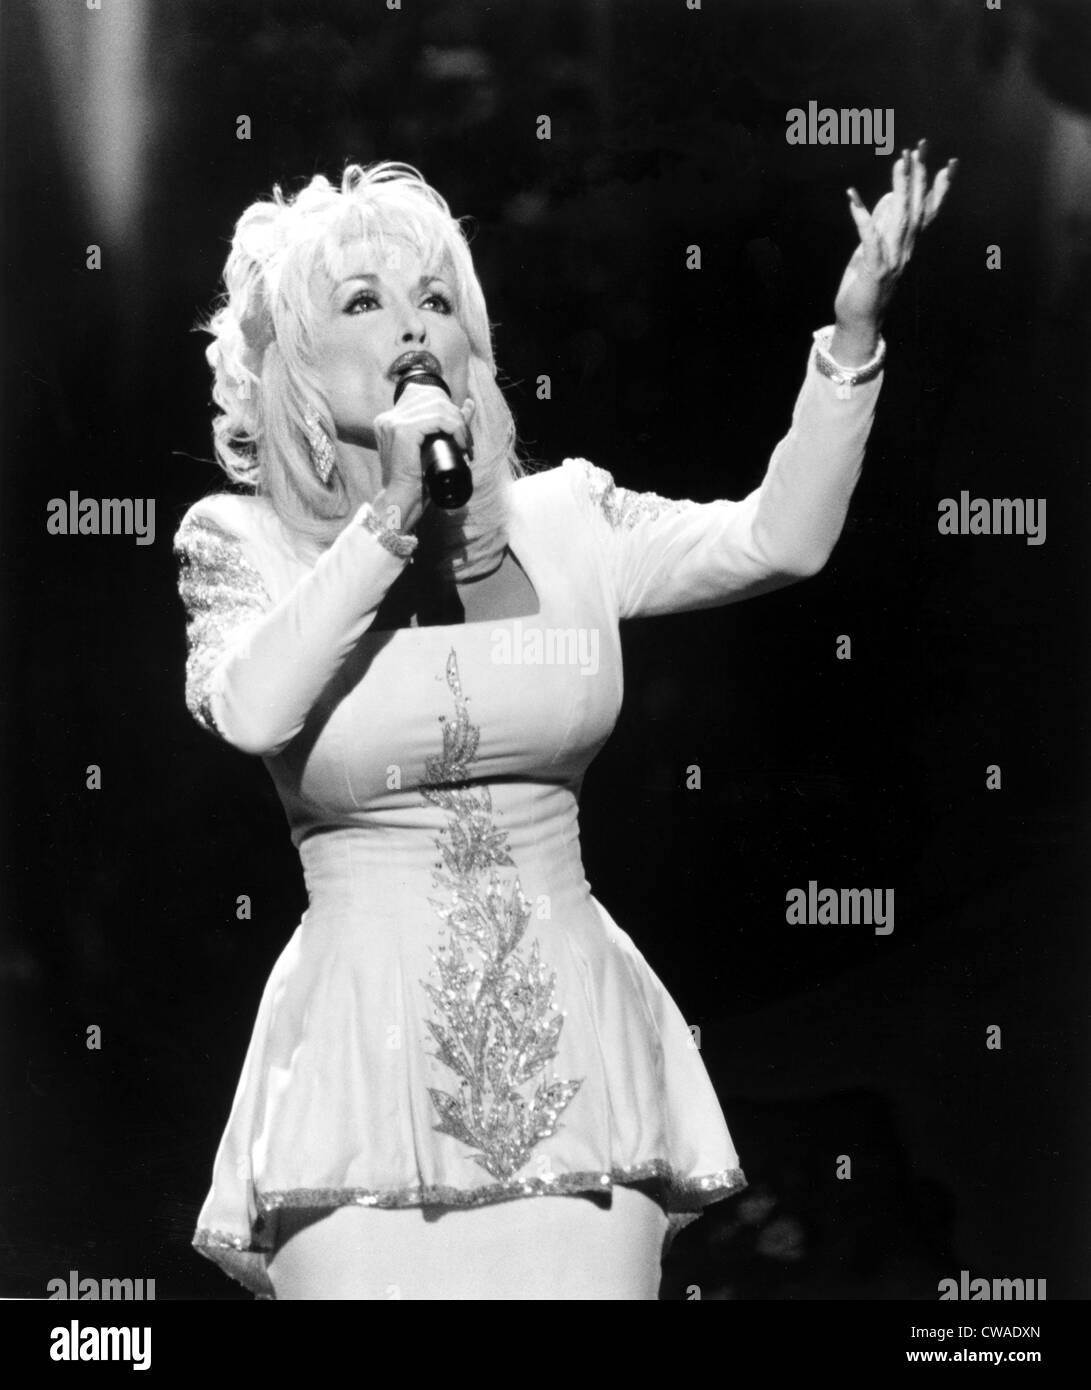 Dolly Parton, 1990s.. Courtesy: CSU Archives / Everett Collection - Stock Image